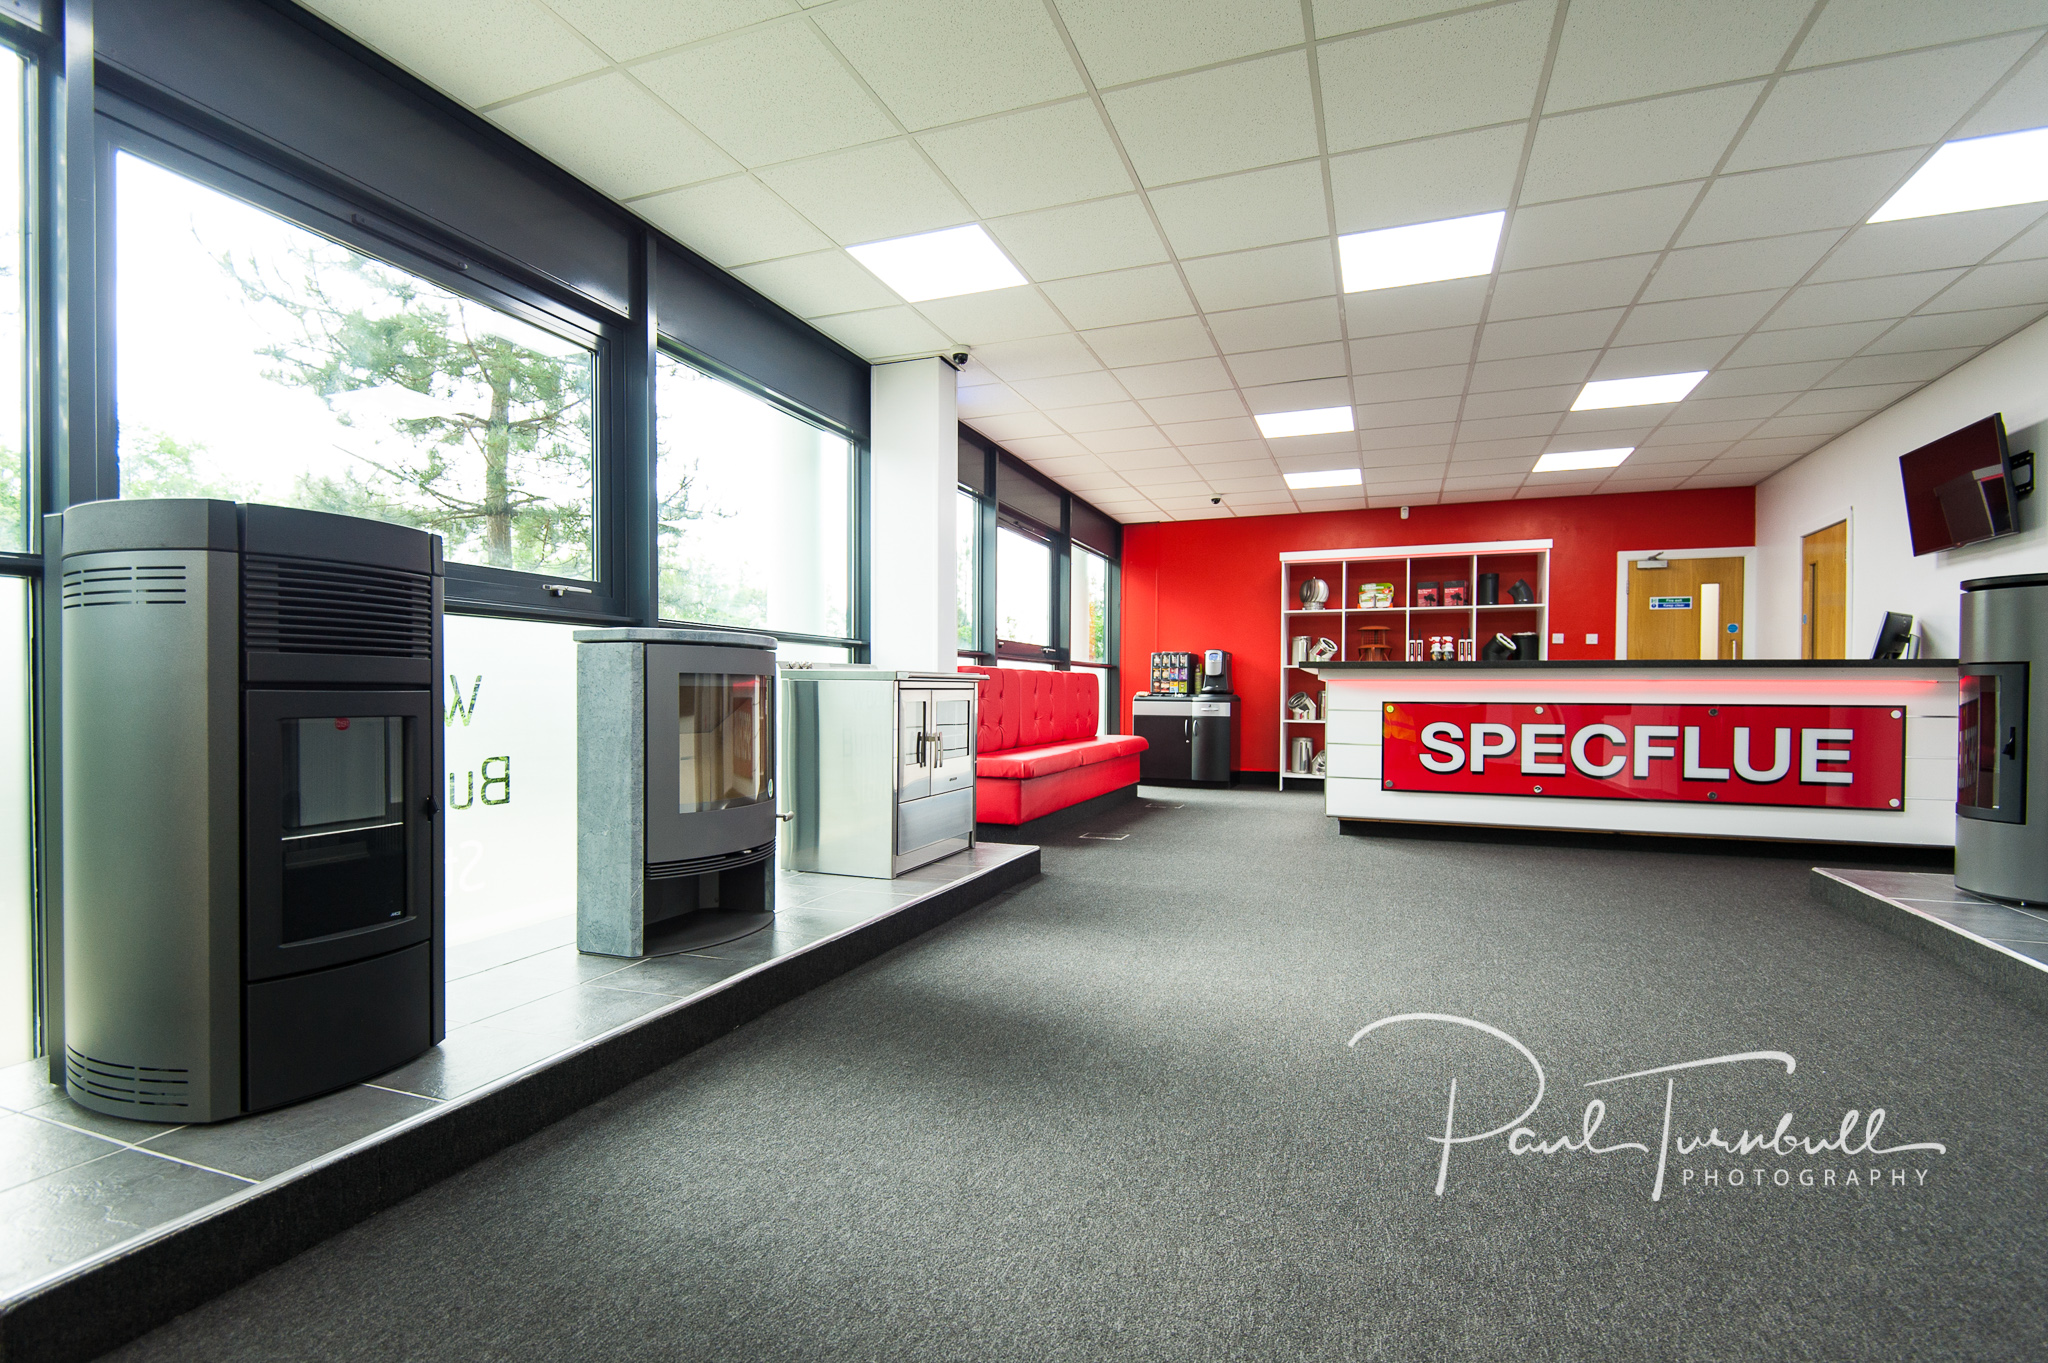 commercial-pr-photographer-leeds-yorkshire-specflue-004.jpg